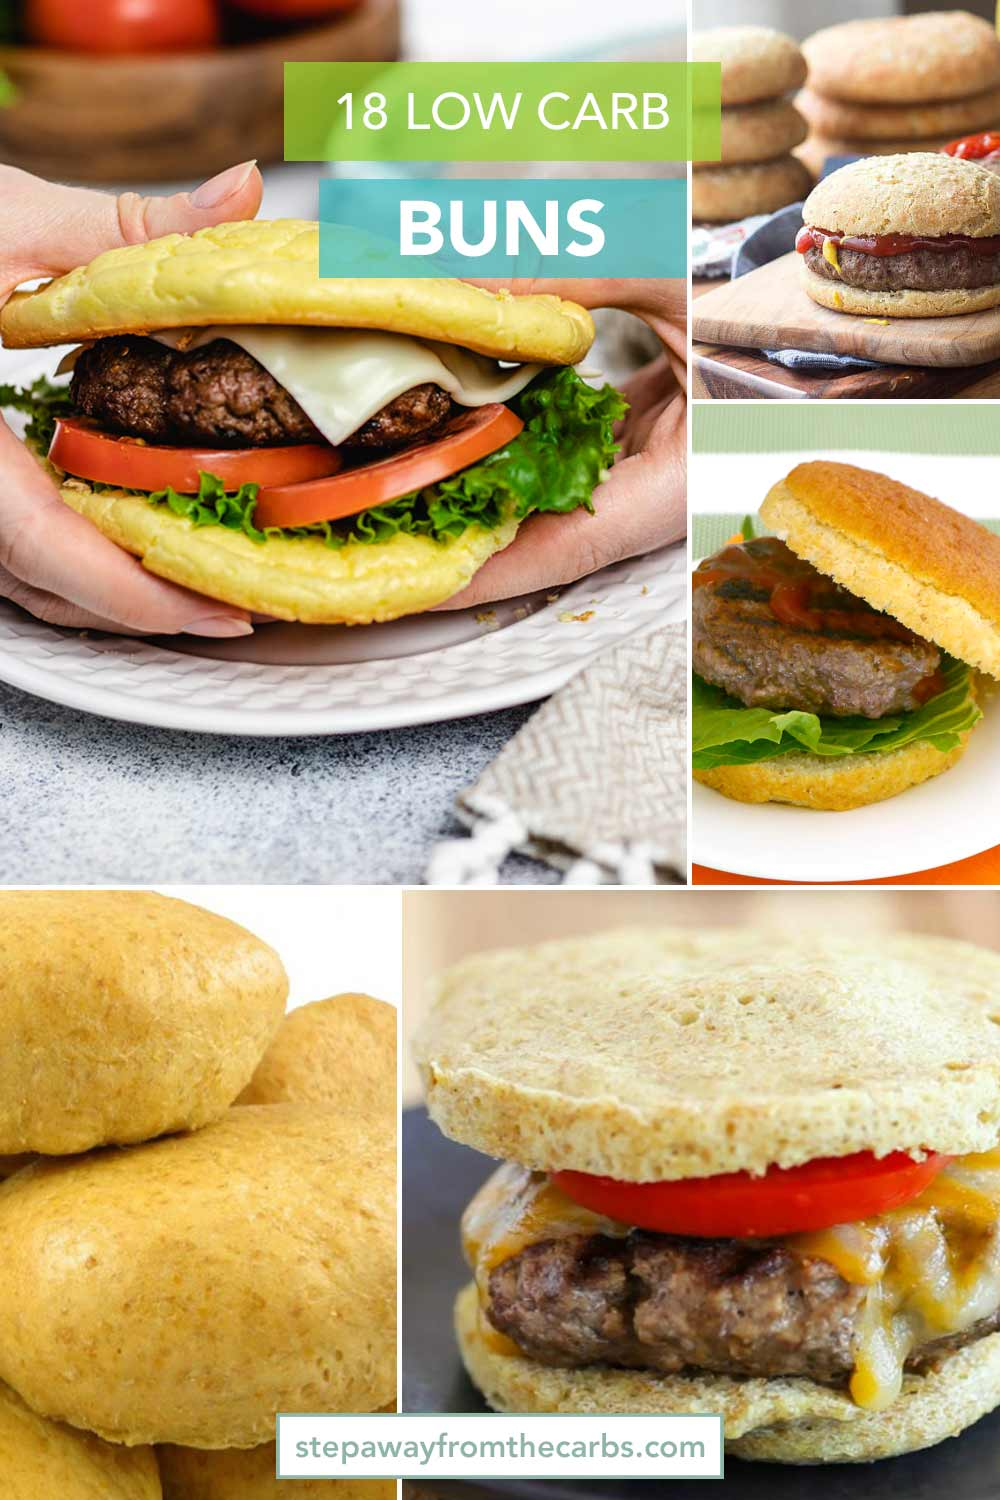 18 Low Carb Buns - homemade, store bought, and alternative options for you to try!